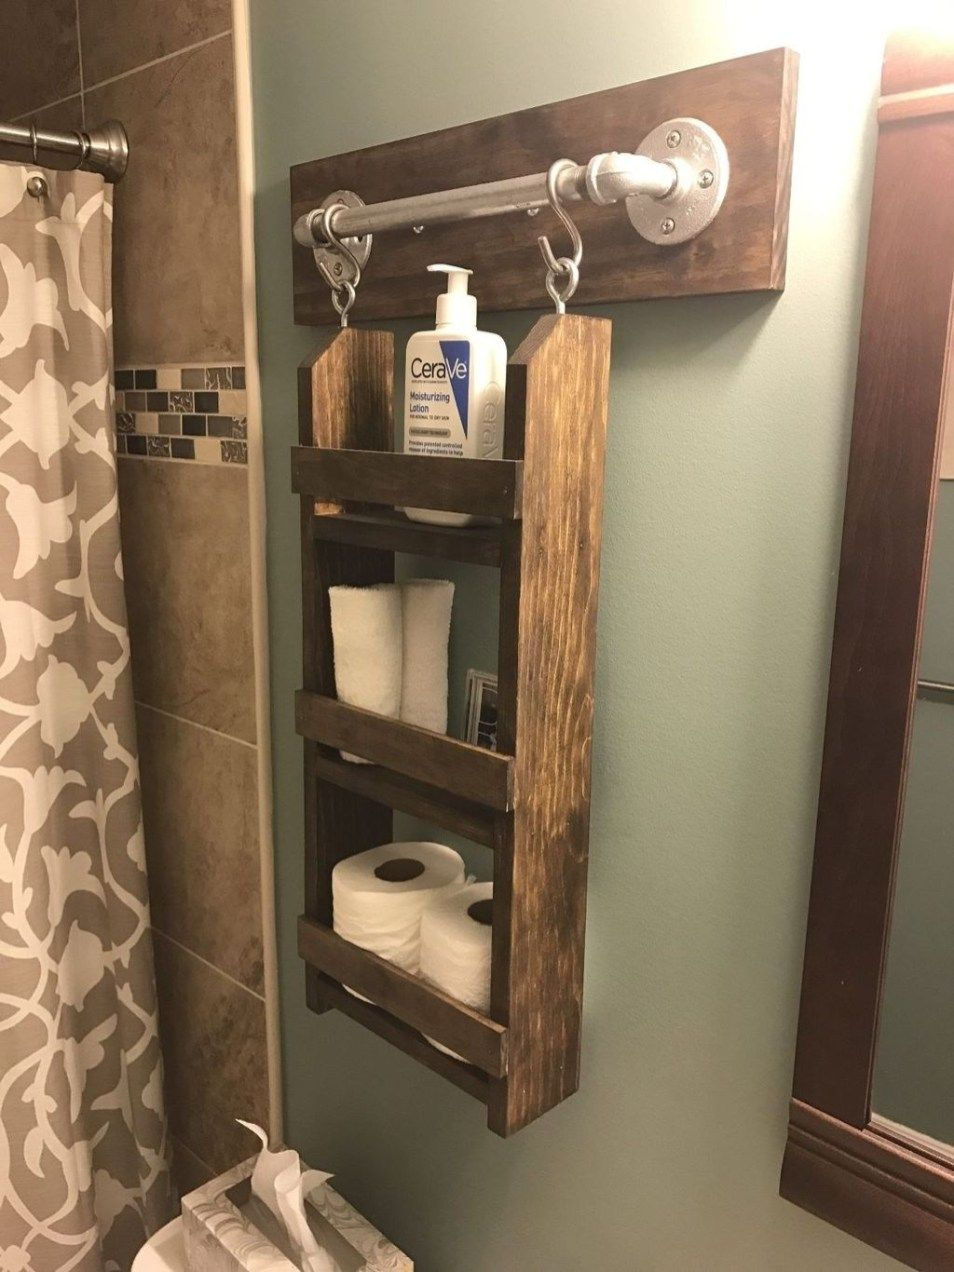 Affordable Hanging Wall Cabinets Ideas For Bathroom You Must Have 20 Bathroom Wall Storage Wall Hanging Storage Bathroom Wall Hanging